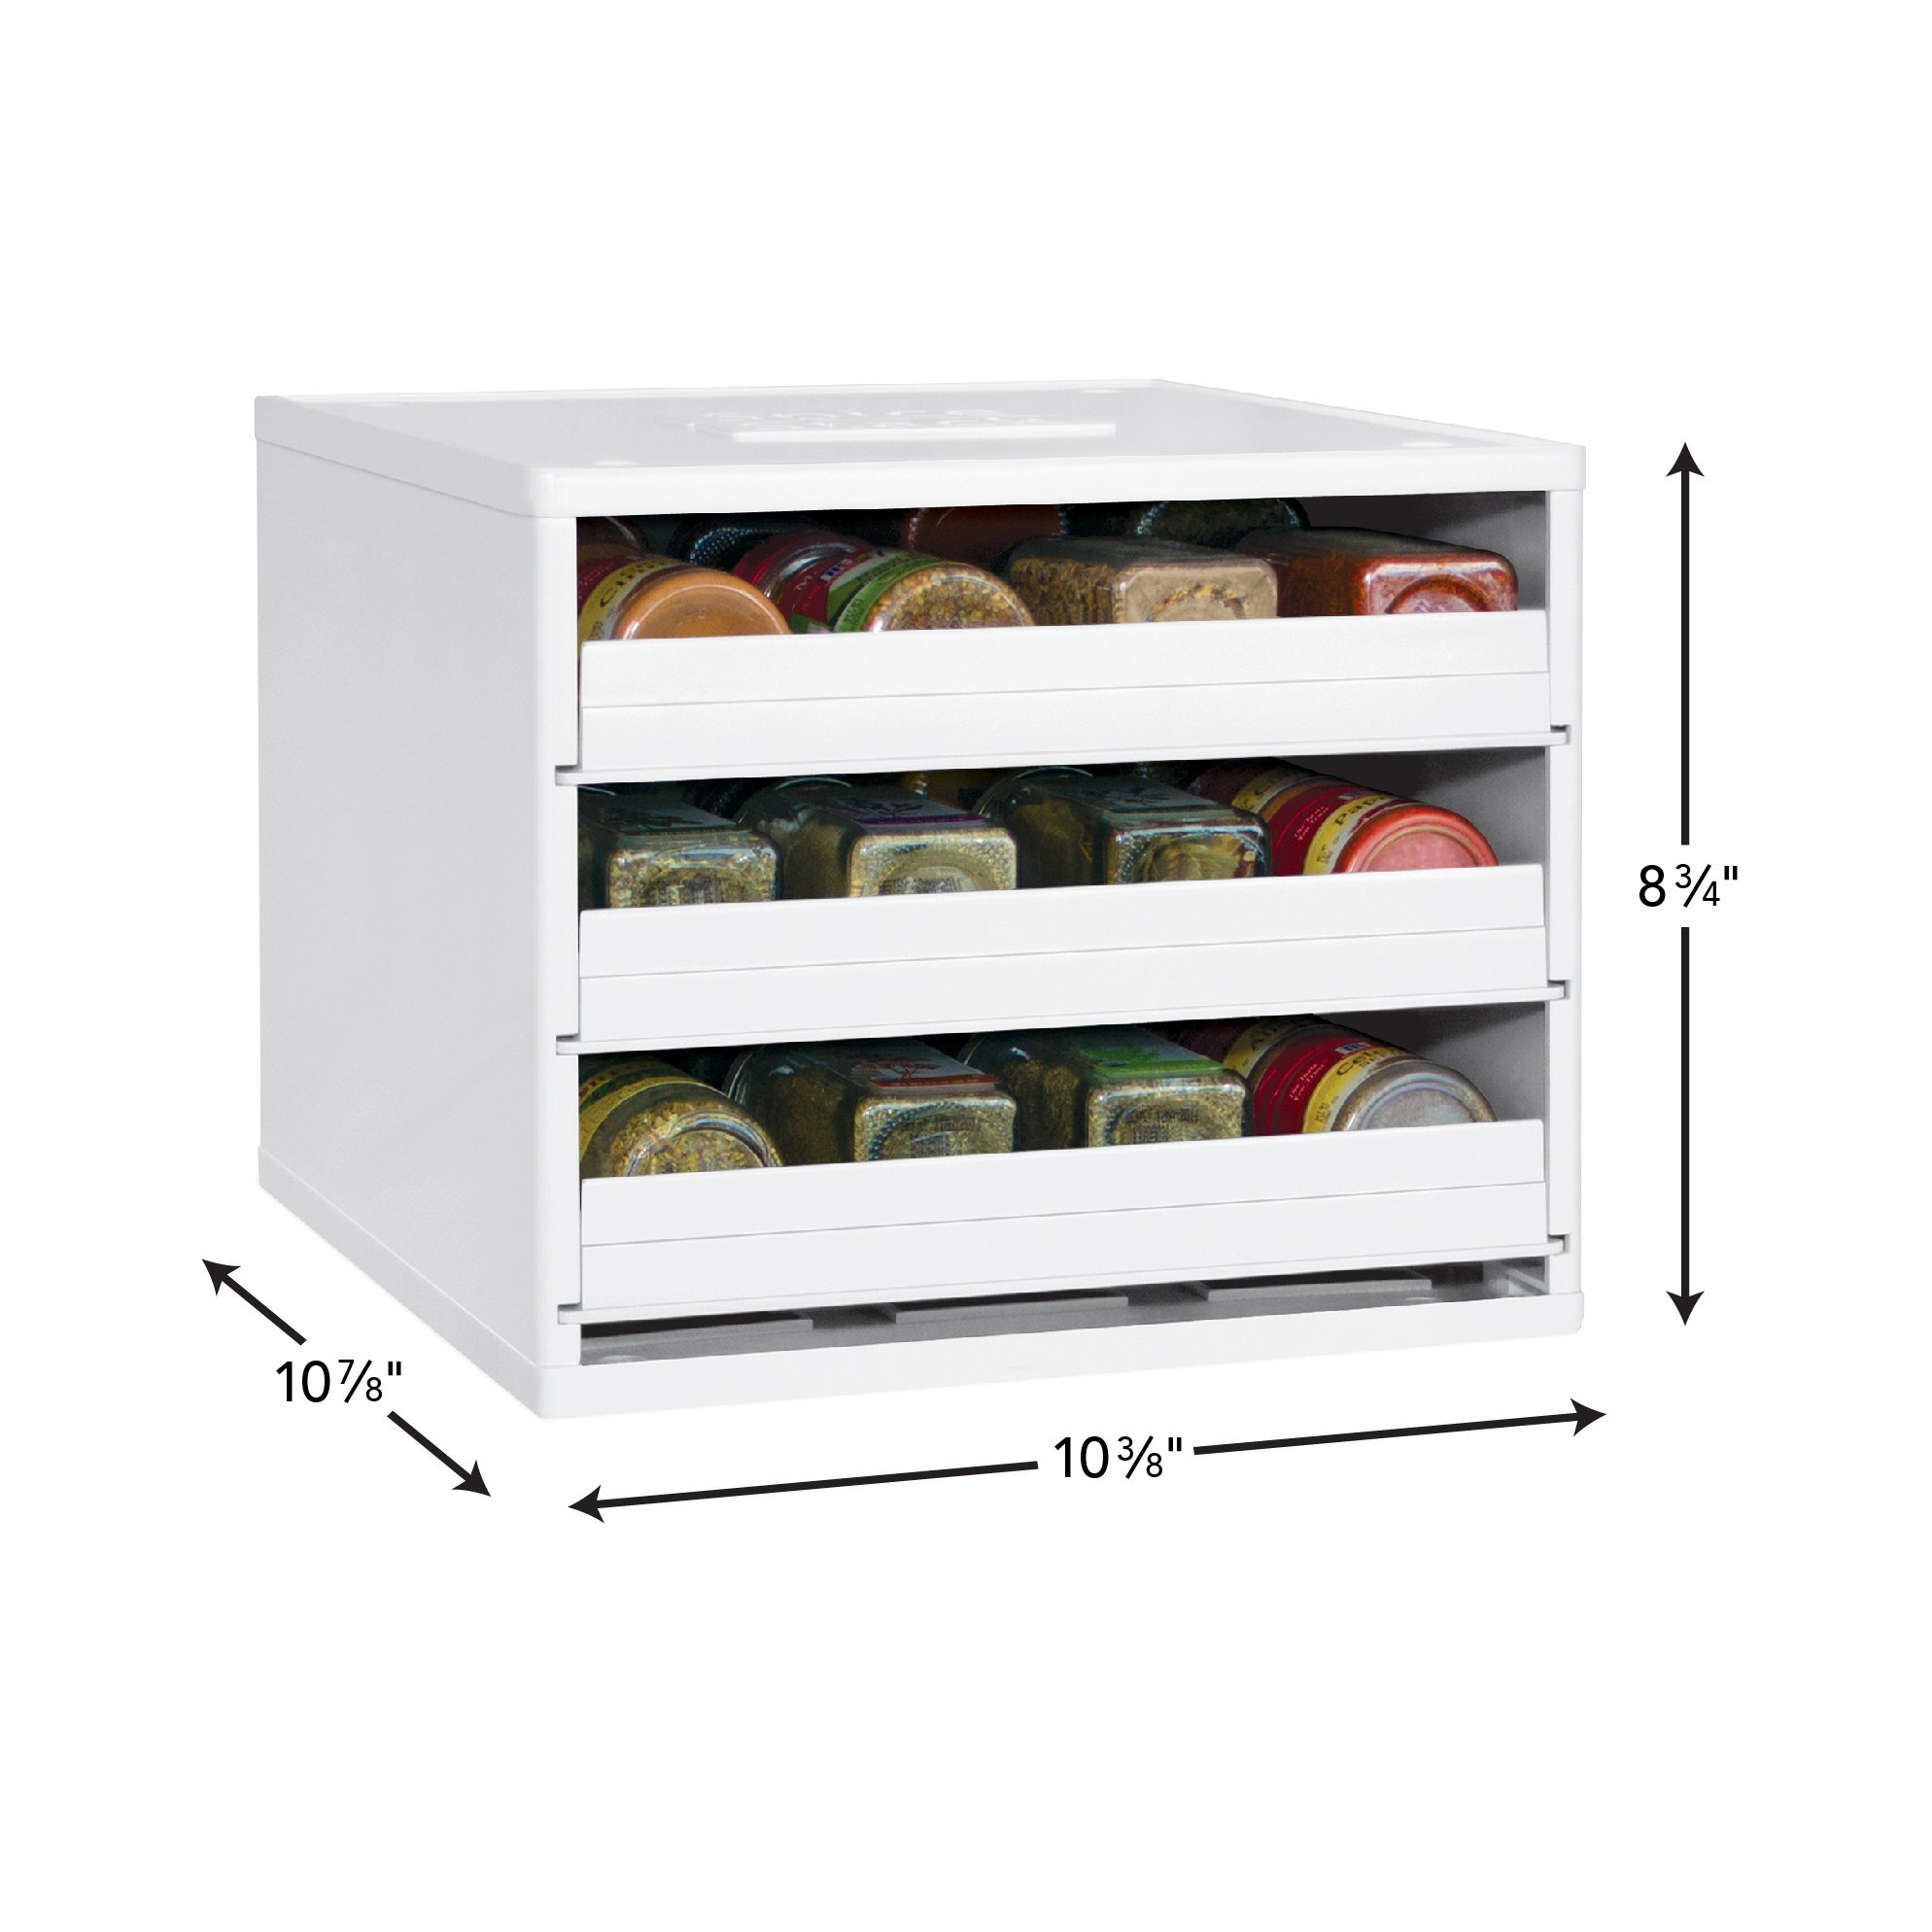 YouCopia Classic SpiceStack 24-Bottle Spice Organizer with Universal Drawers, White by YouCopia (Image #2)